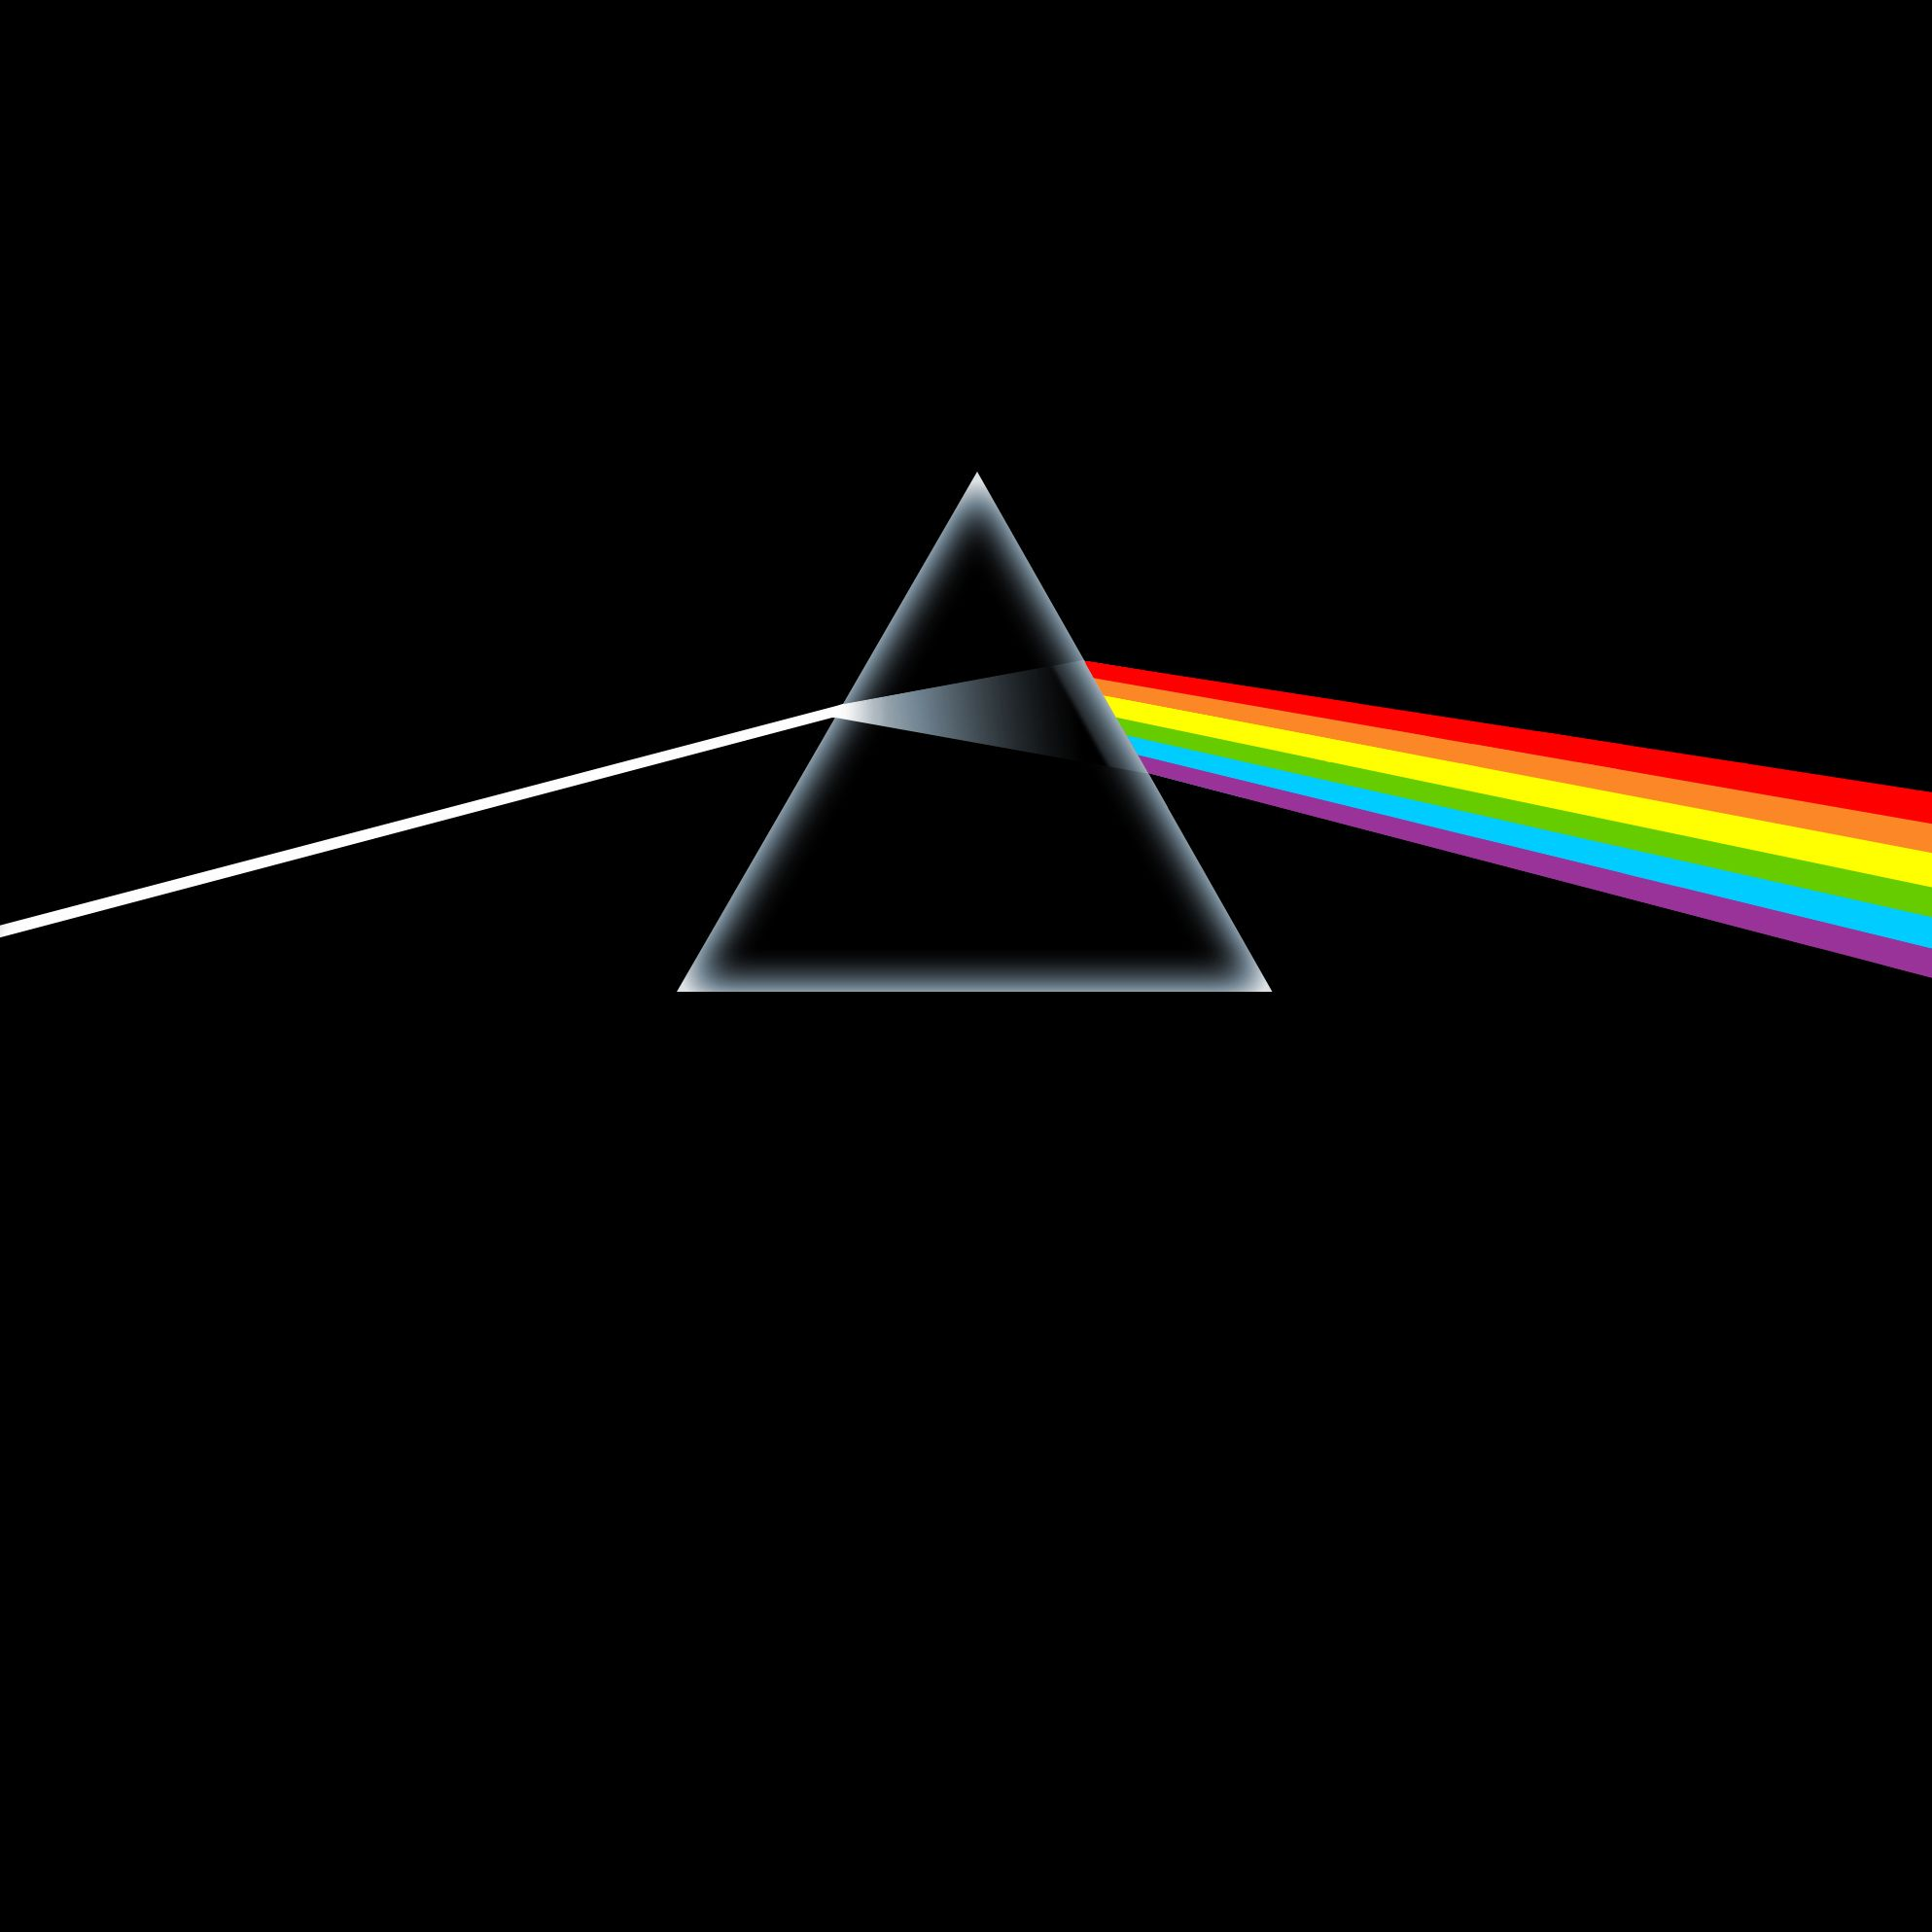 Dark Side Of The Moon Music Wallpaper Hd Wallpapers